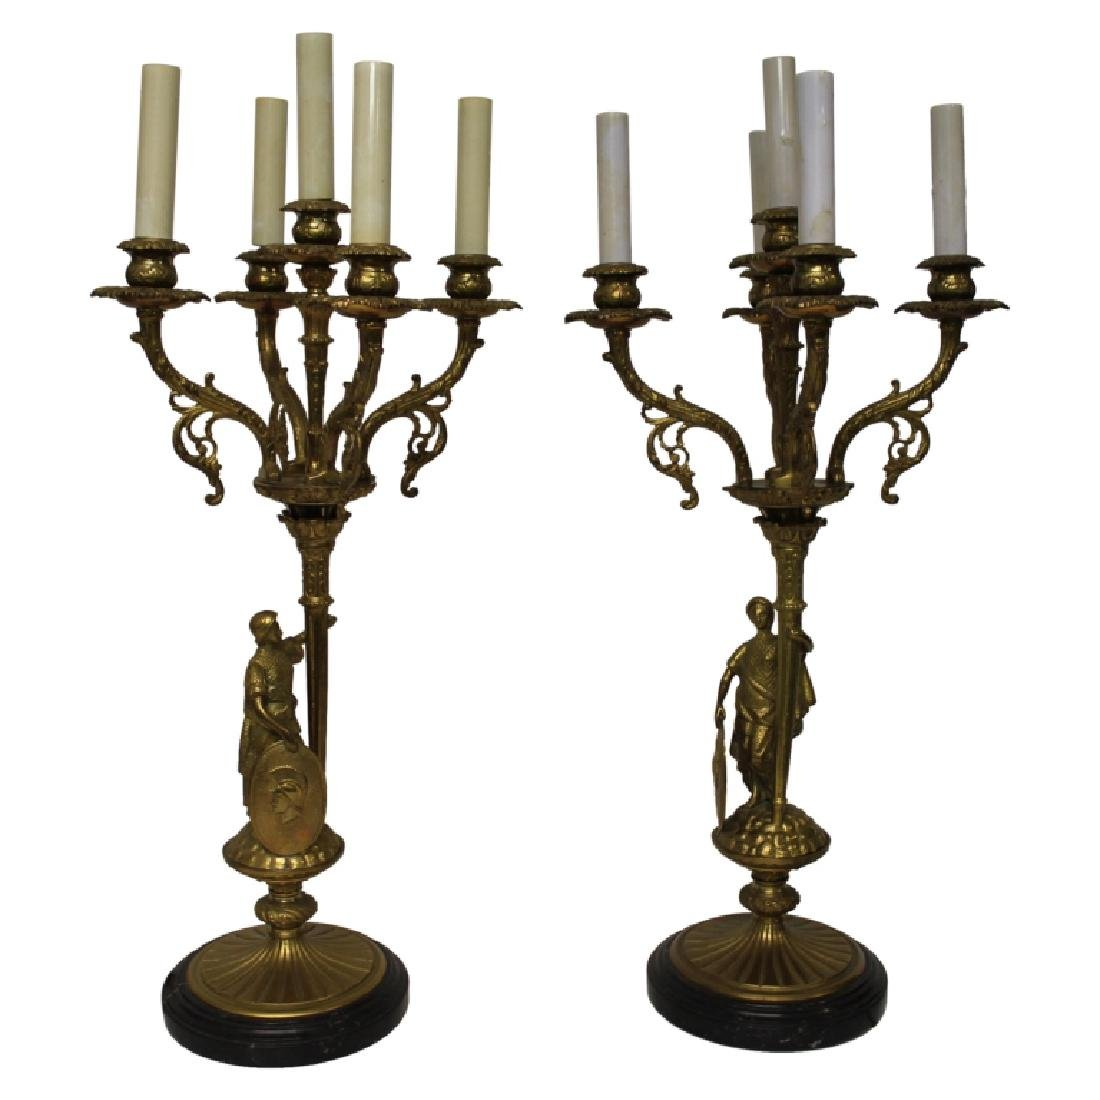 Pair of Bronze Candelabra Light Fixtures